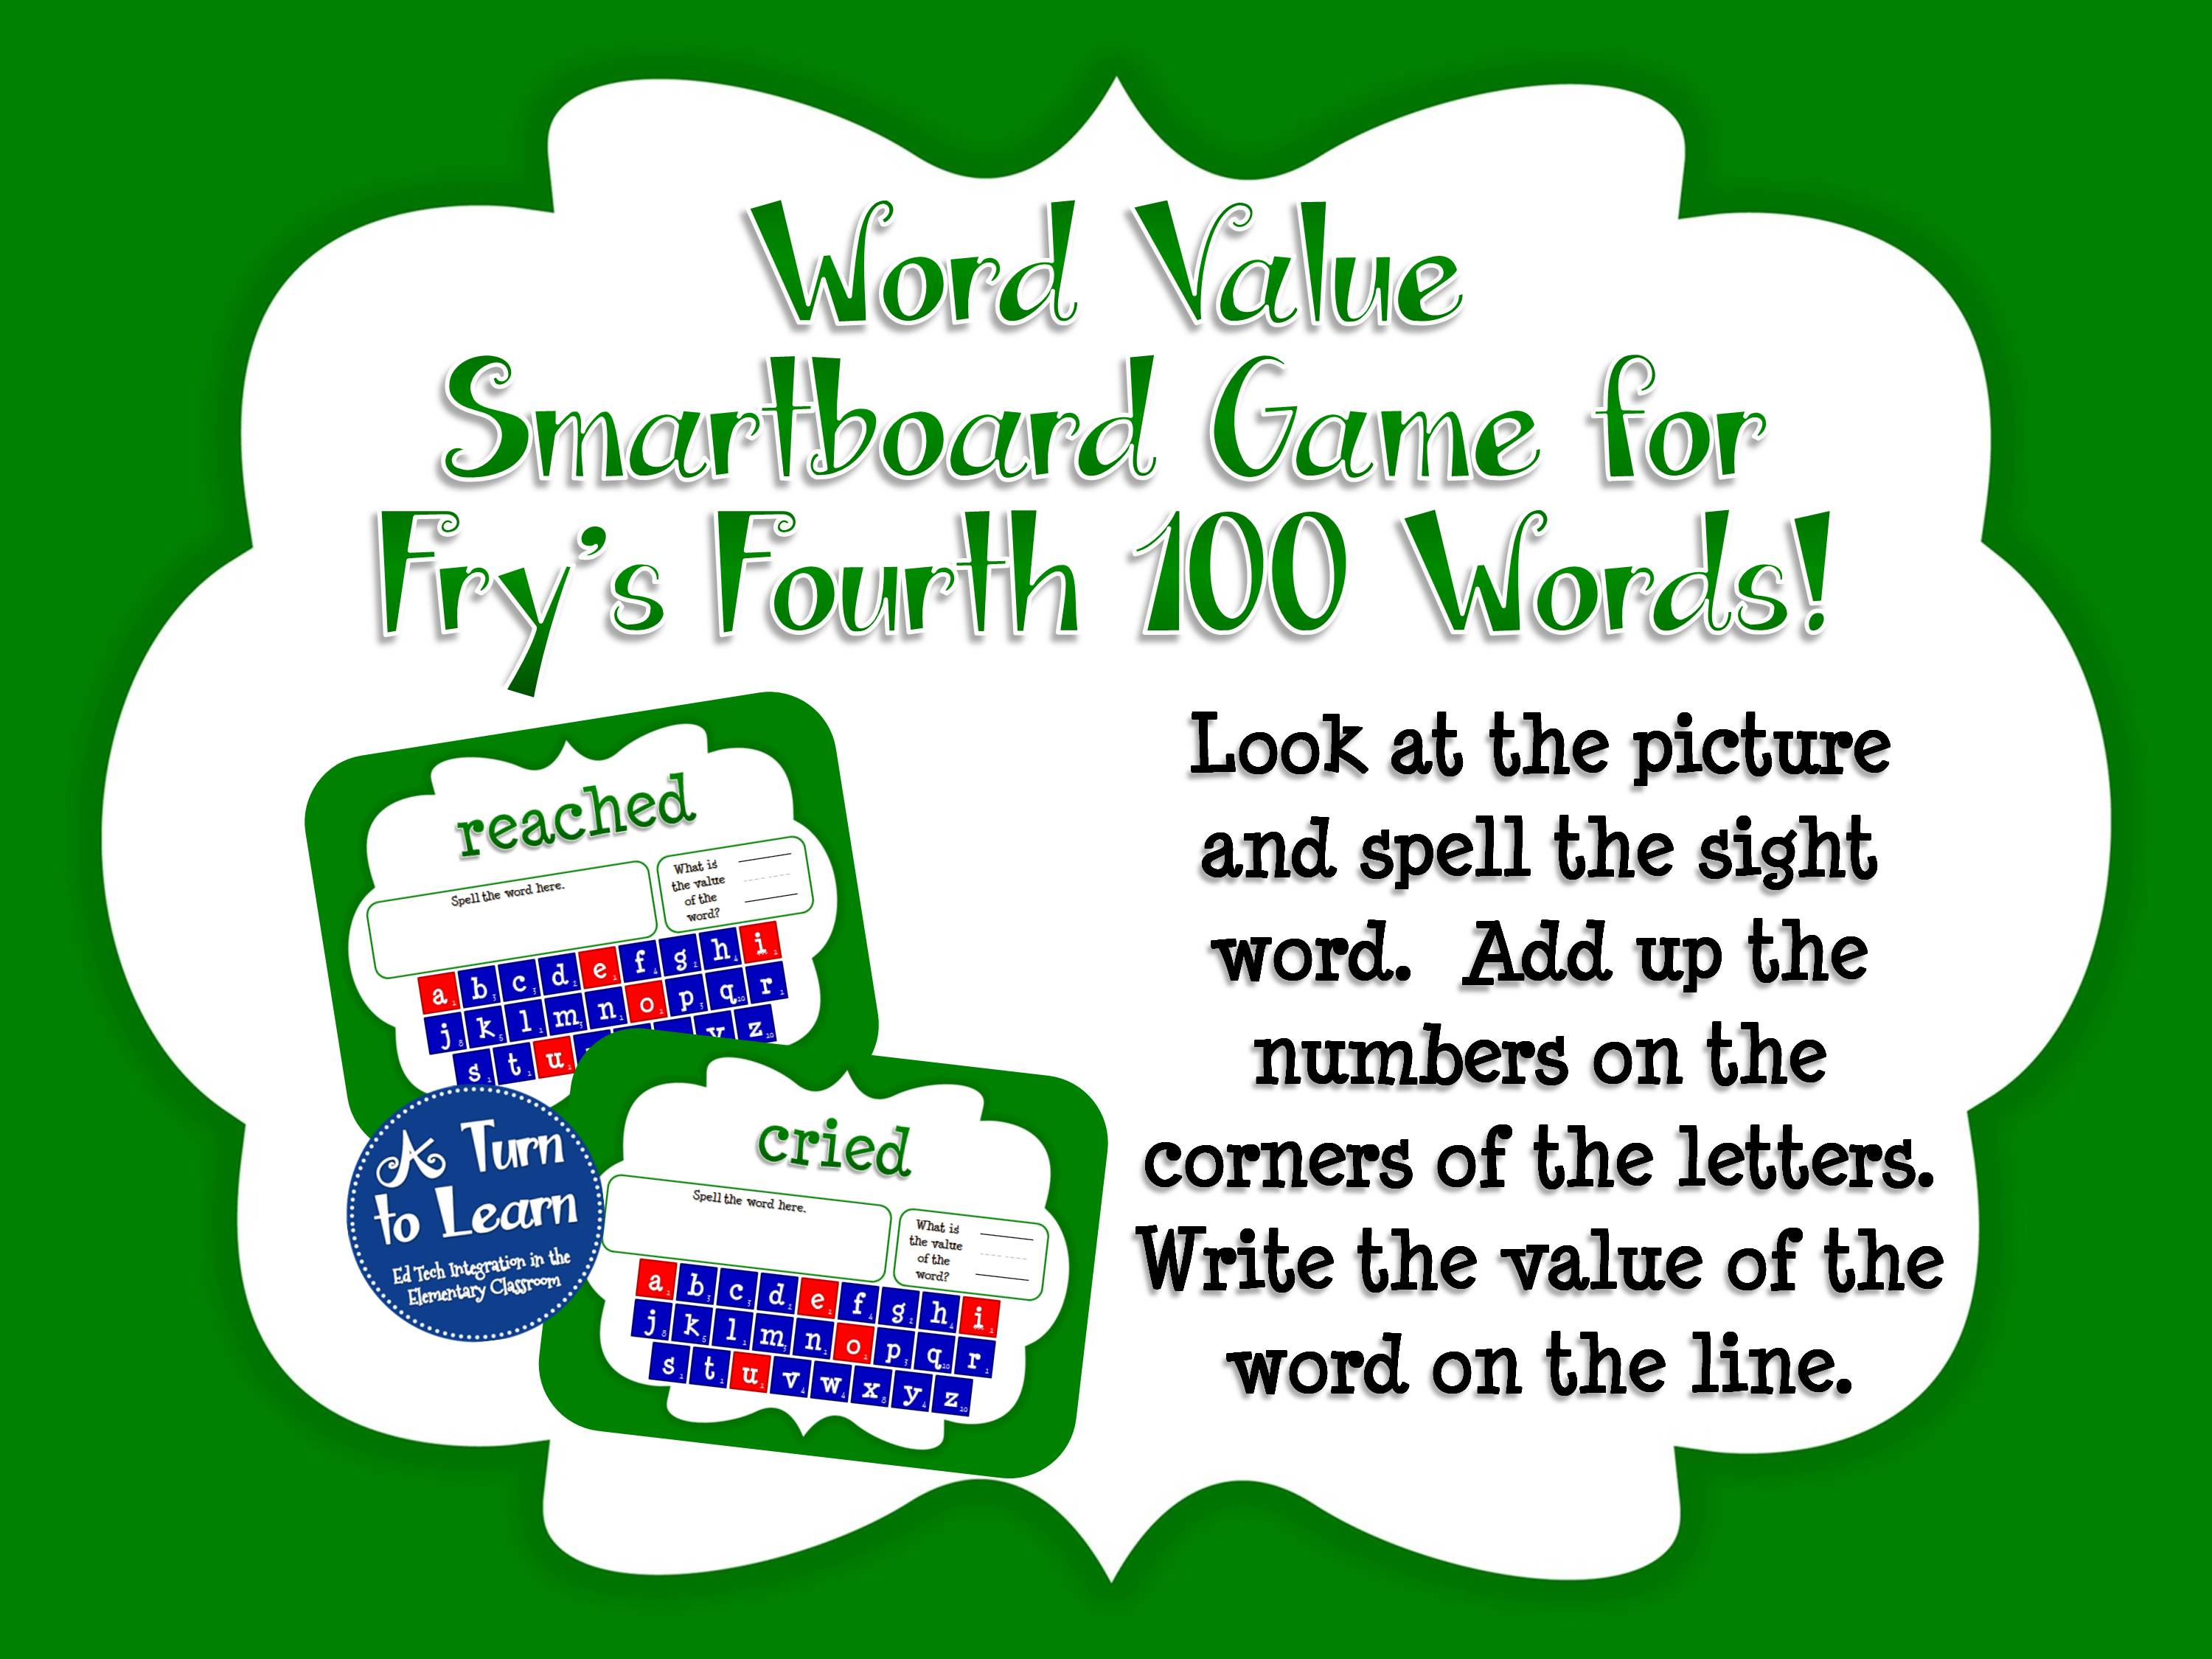 Sight Words Smartboard Game: Fry's Fourth 100 Words